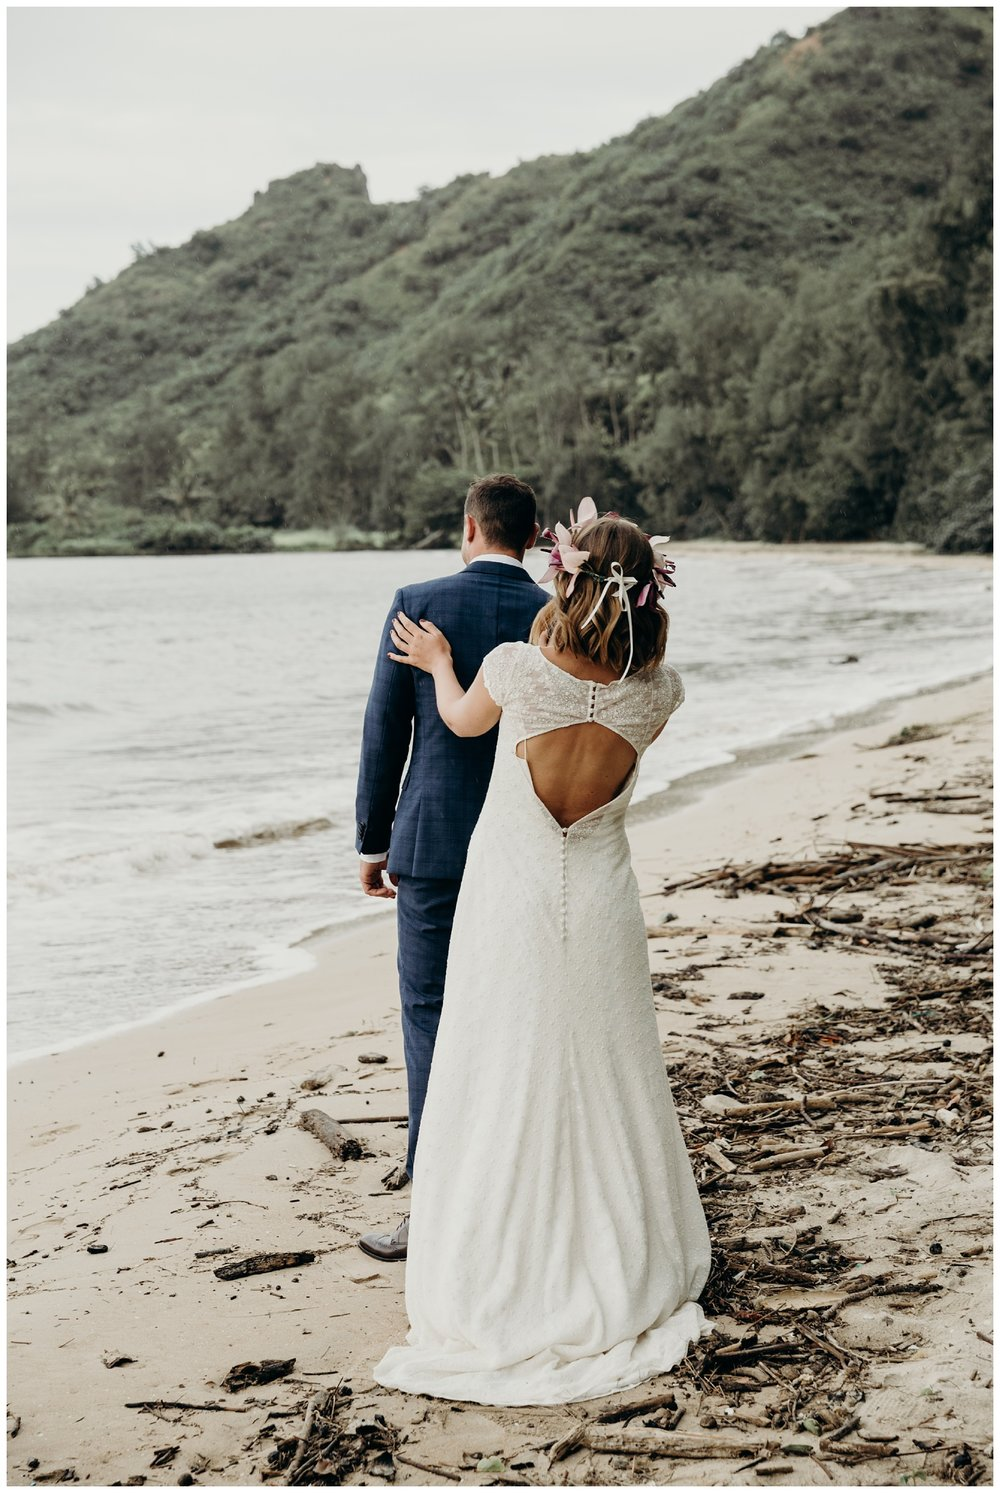 Hawaii-Wedding-Photographer-Keani-Bakula-Turtle-Bay_0013.jpg